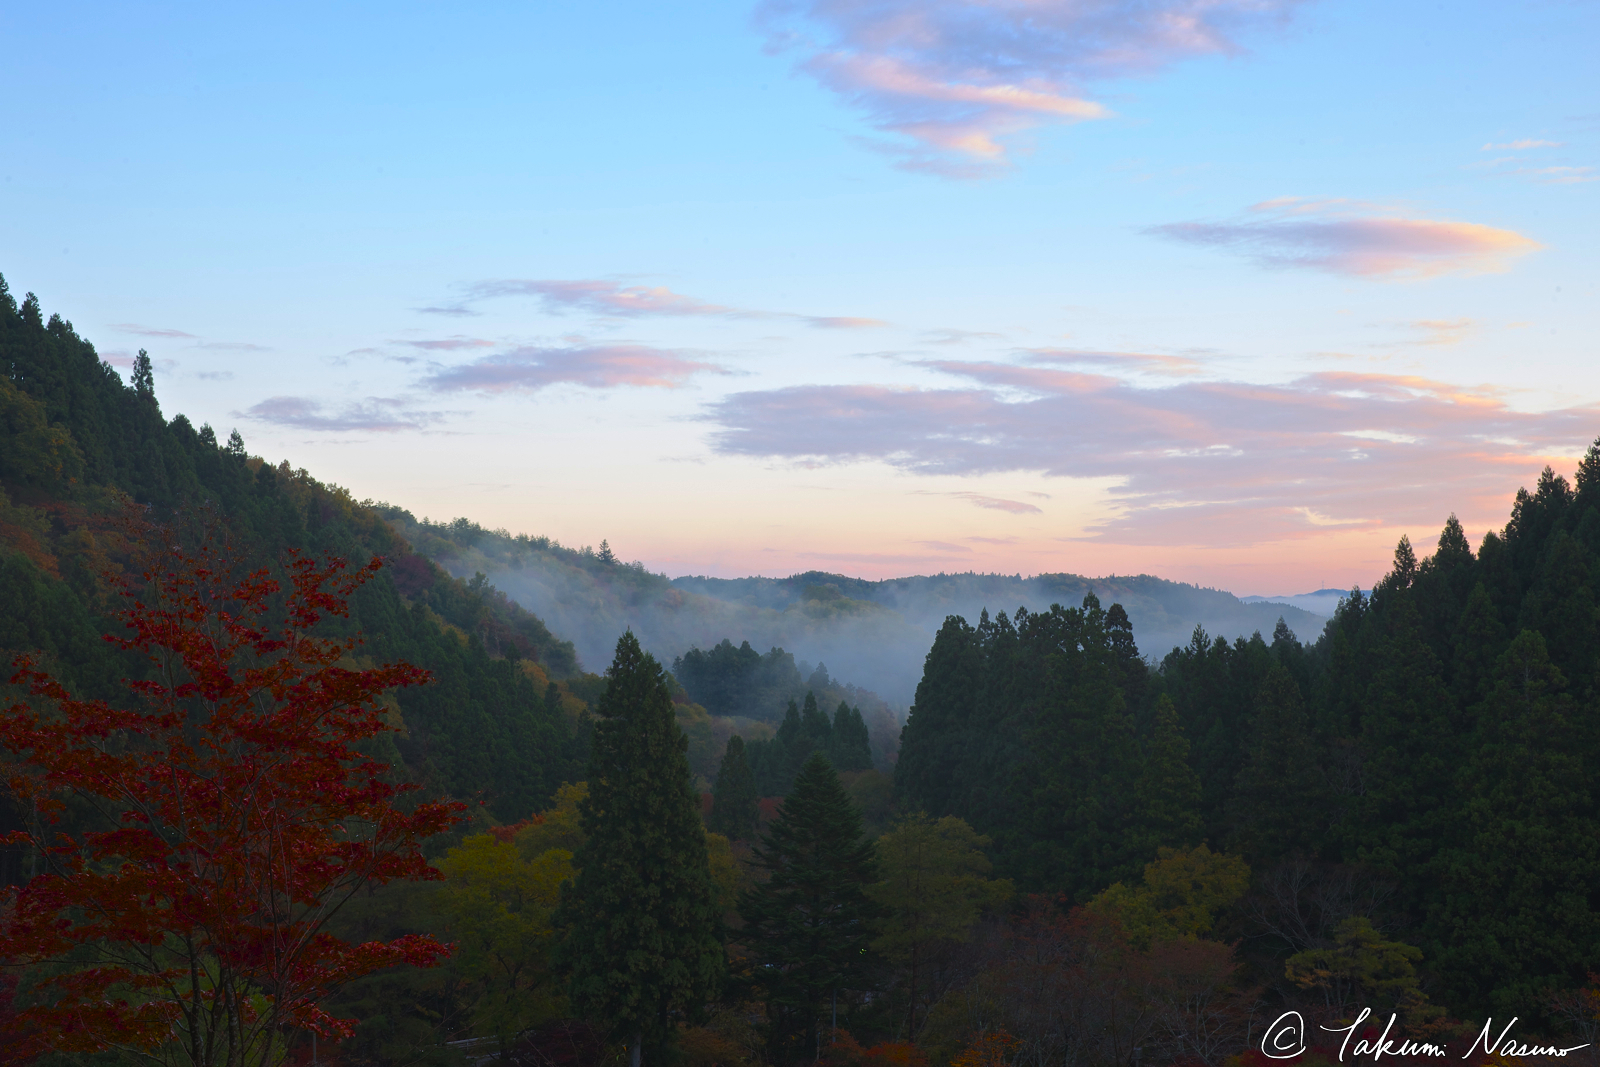 sea-of-clouds-from-yamamoto-fudouson-temple